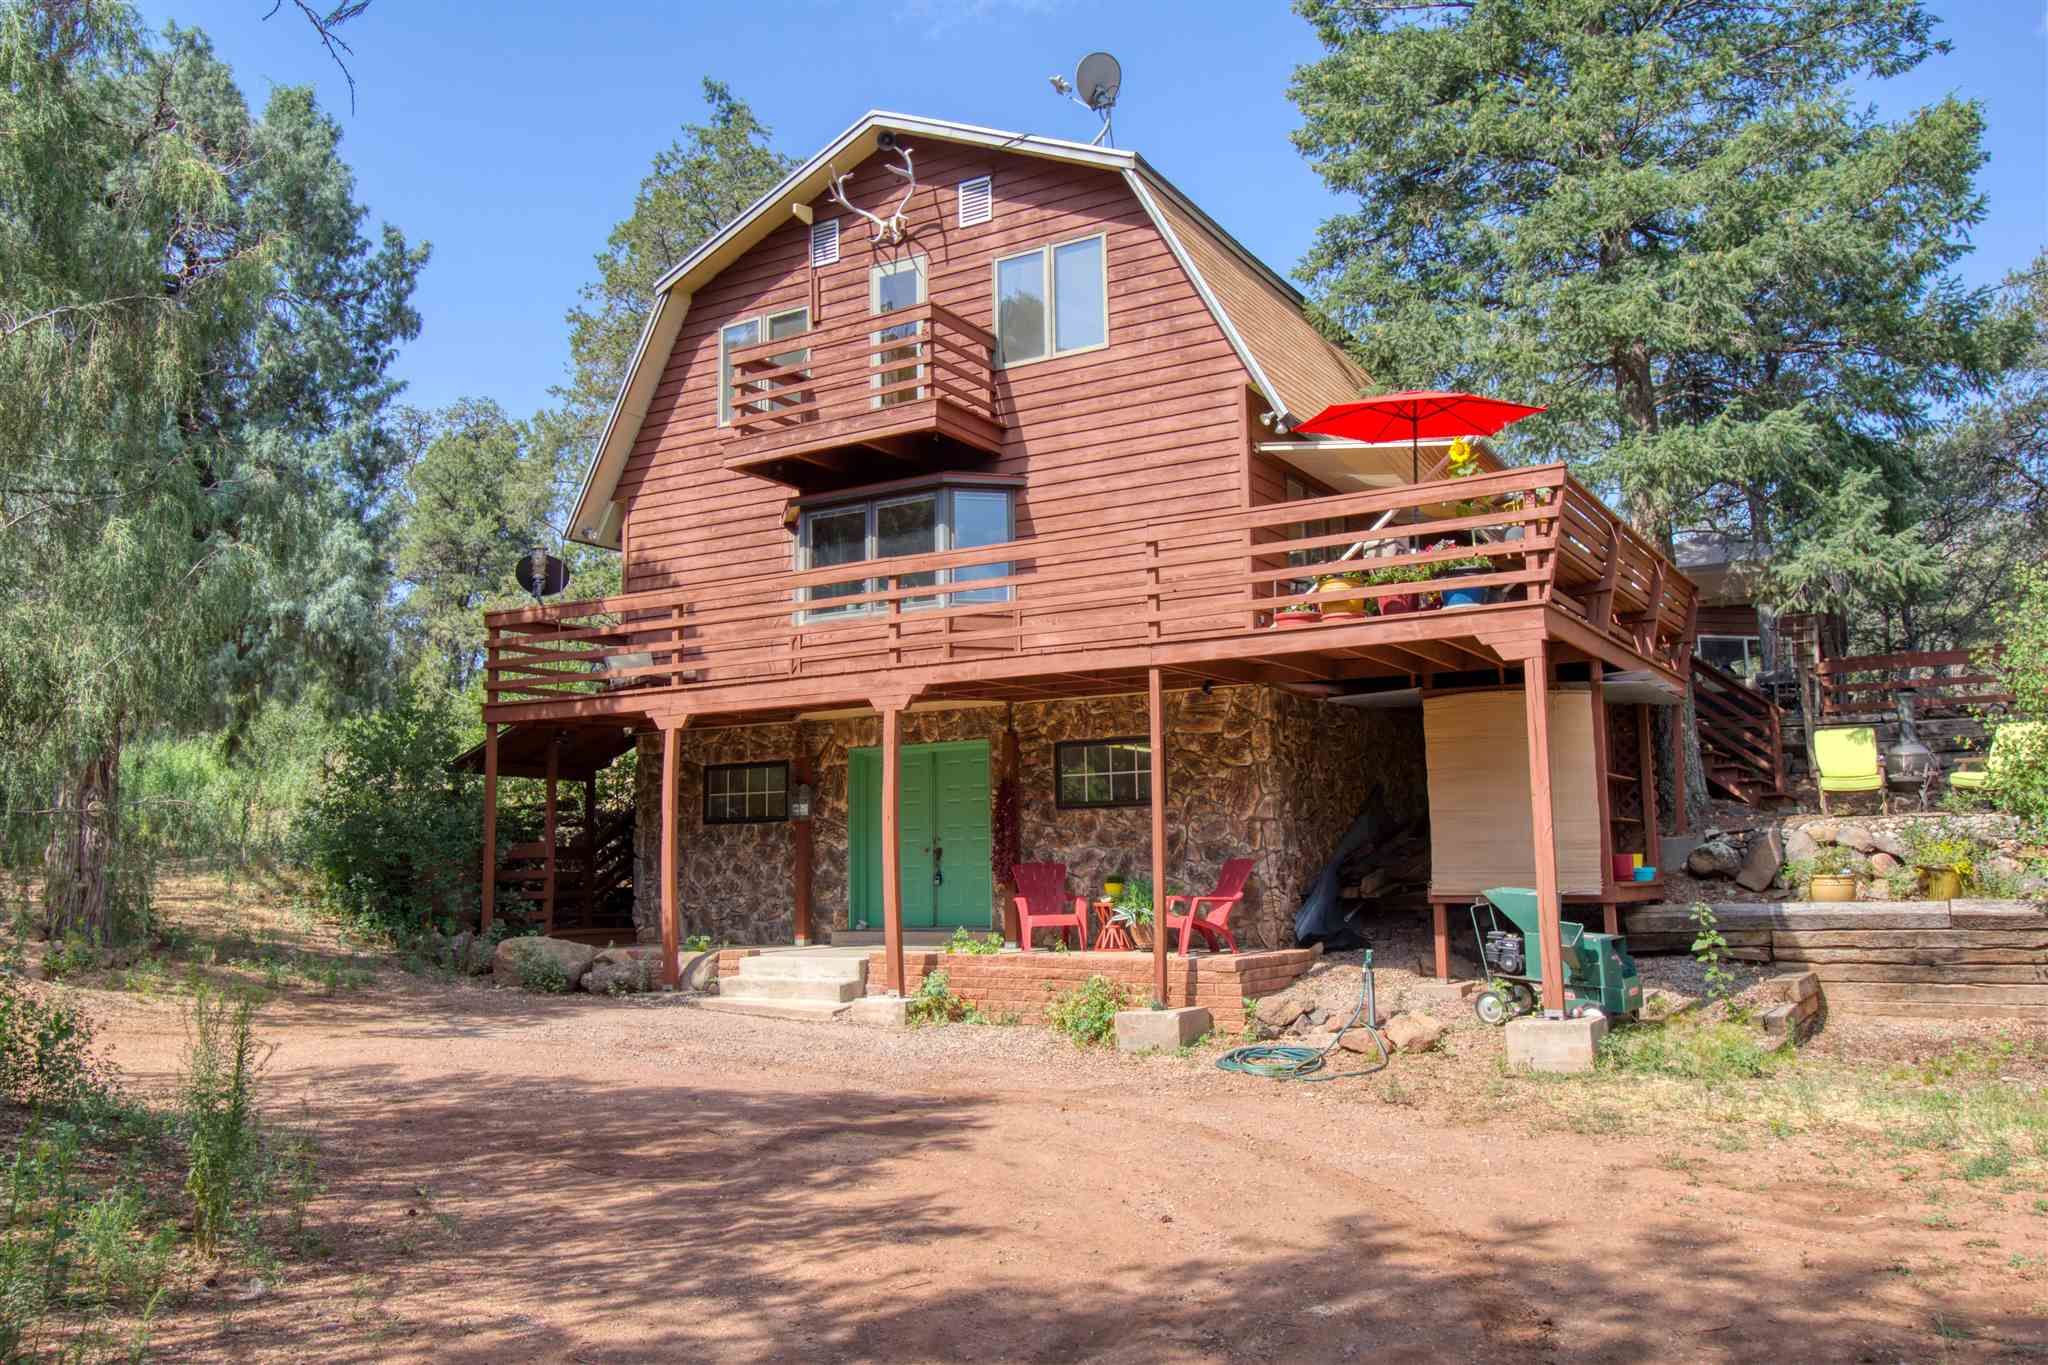 Your mountain oasis is now available!  Surrounded by pine trees and solitude, this well-built Jemez home is sited on over an acre of natural beauty.  The wrap-around deck and covered awning provide you with outdoor living space to enjoy the sounds of wildlife in your natural retreat.  You can further relax in your top-floor master suite, complete with its own fireplace, sitting area, and walk-in closet.  The master bathroom has a walk-in rainfall shower and a double vanity.  Slate floors and tongue-in-groove ceilings complete the high-end look and feel.  A second top-floor bedroom opens onto a balcony with views up the valley.  An additional large bedroom with a walk-in closet and attached bathroom is located on the main floor.  The kitchen, living room, and dining room make up the remainder of the main floor living space, which also opens onto the wrap-around deck.  A spacious laundry room is located past the kitchen.  The ground-level floor contains additional space for your workshop and storing your toys.  There is also space for your larger toys in the detached carport.  The property can be sold with the furniture, so you can start enjoying your mountain living right away.  Come make this mountain oasis yours today!